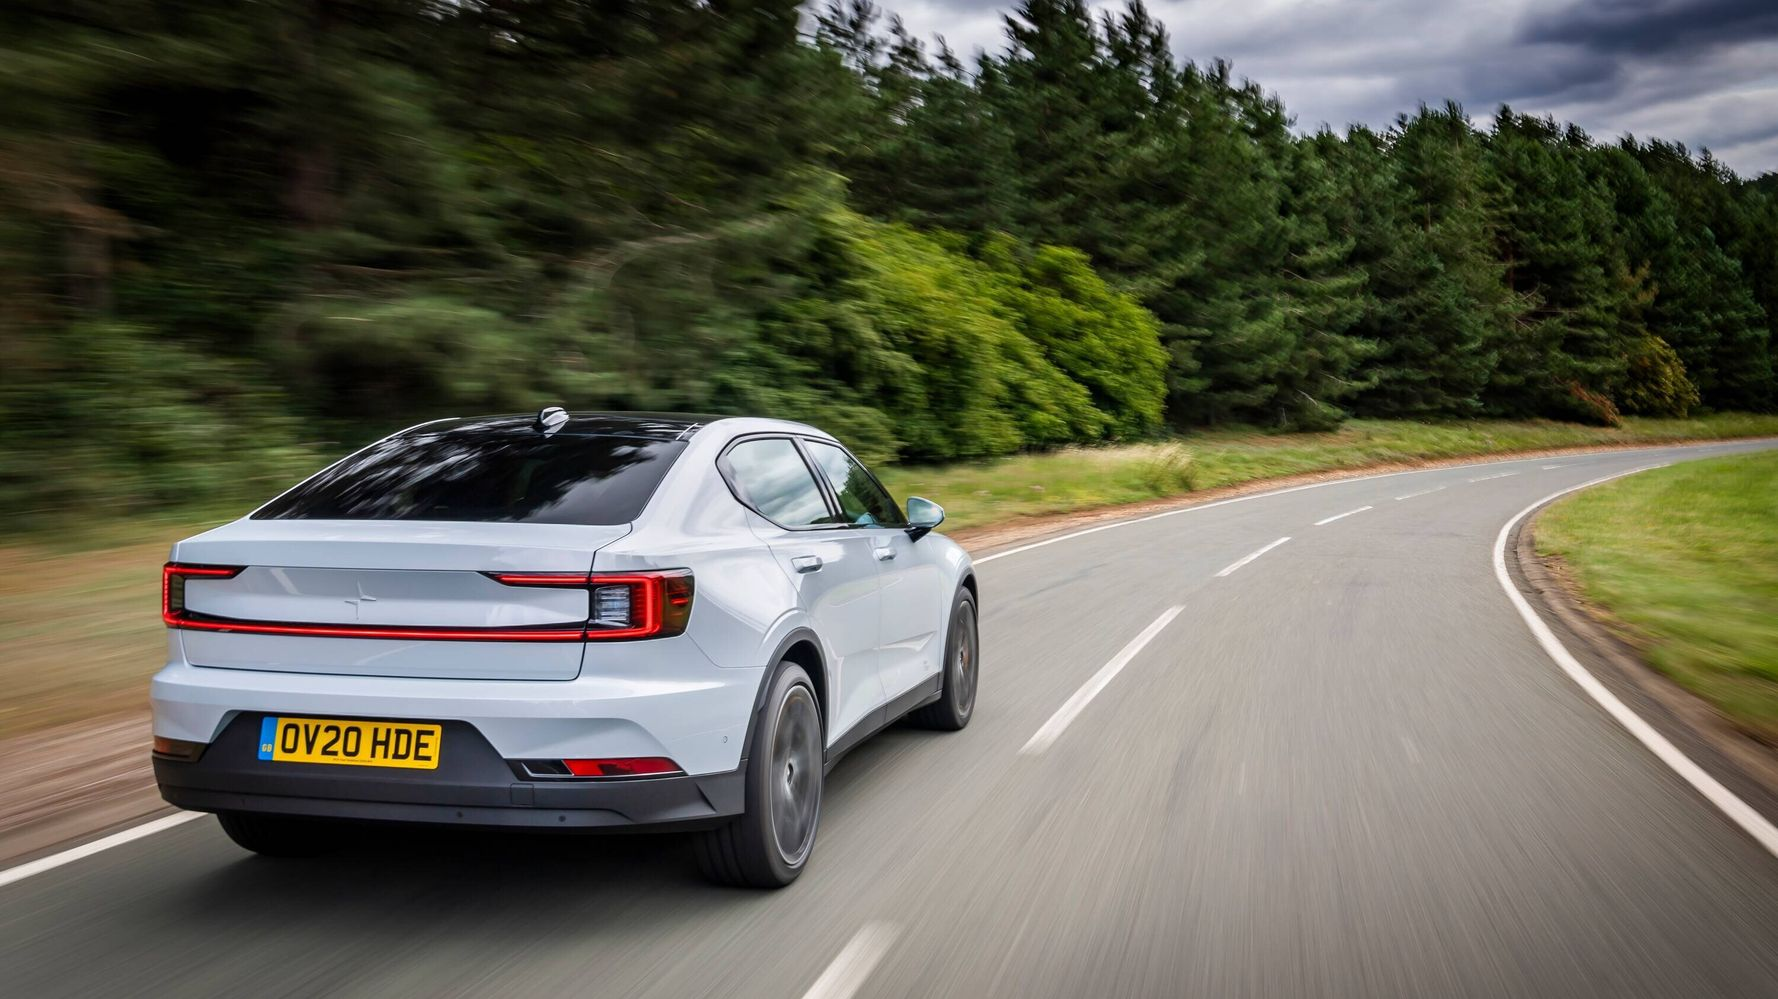 Thinking Of Switching To An Electric Car In 2021? Here's Why Now's A Perfect Time To Plug In...